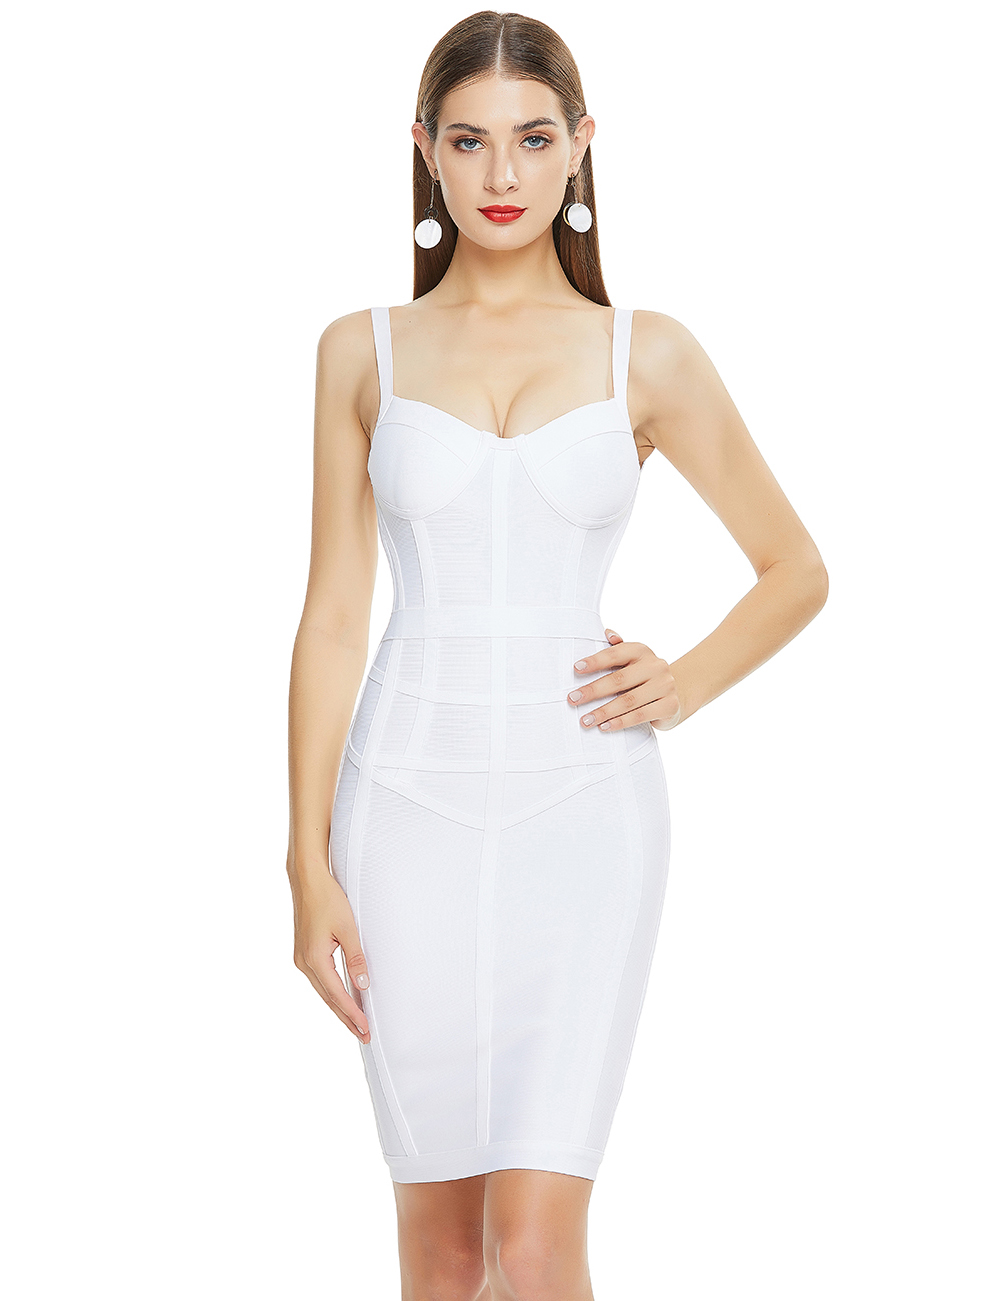 //cdn.affectcloud.com/hexinfashion/upload/imgs/dresses/Bandage_Dresses/VZ191303-WH1/VZ191303-WH1-201911225dd75b3957bc9.jpg